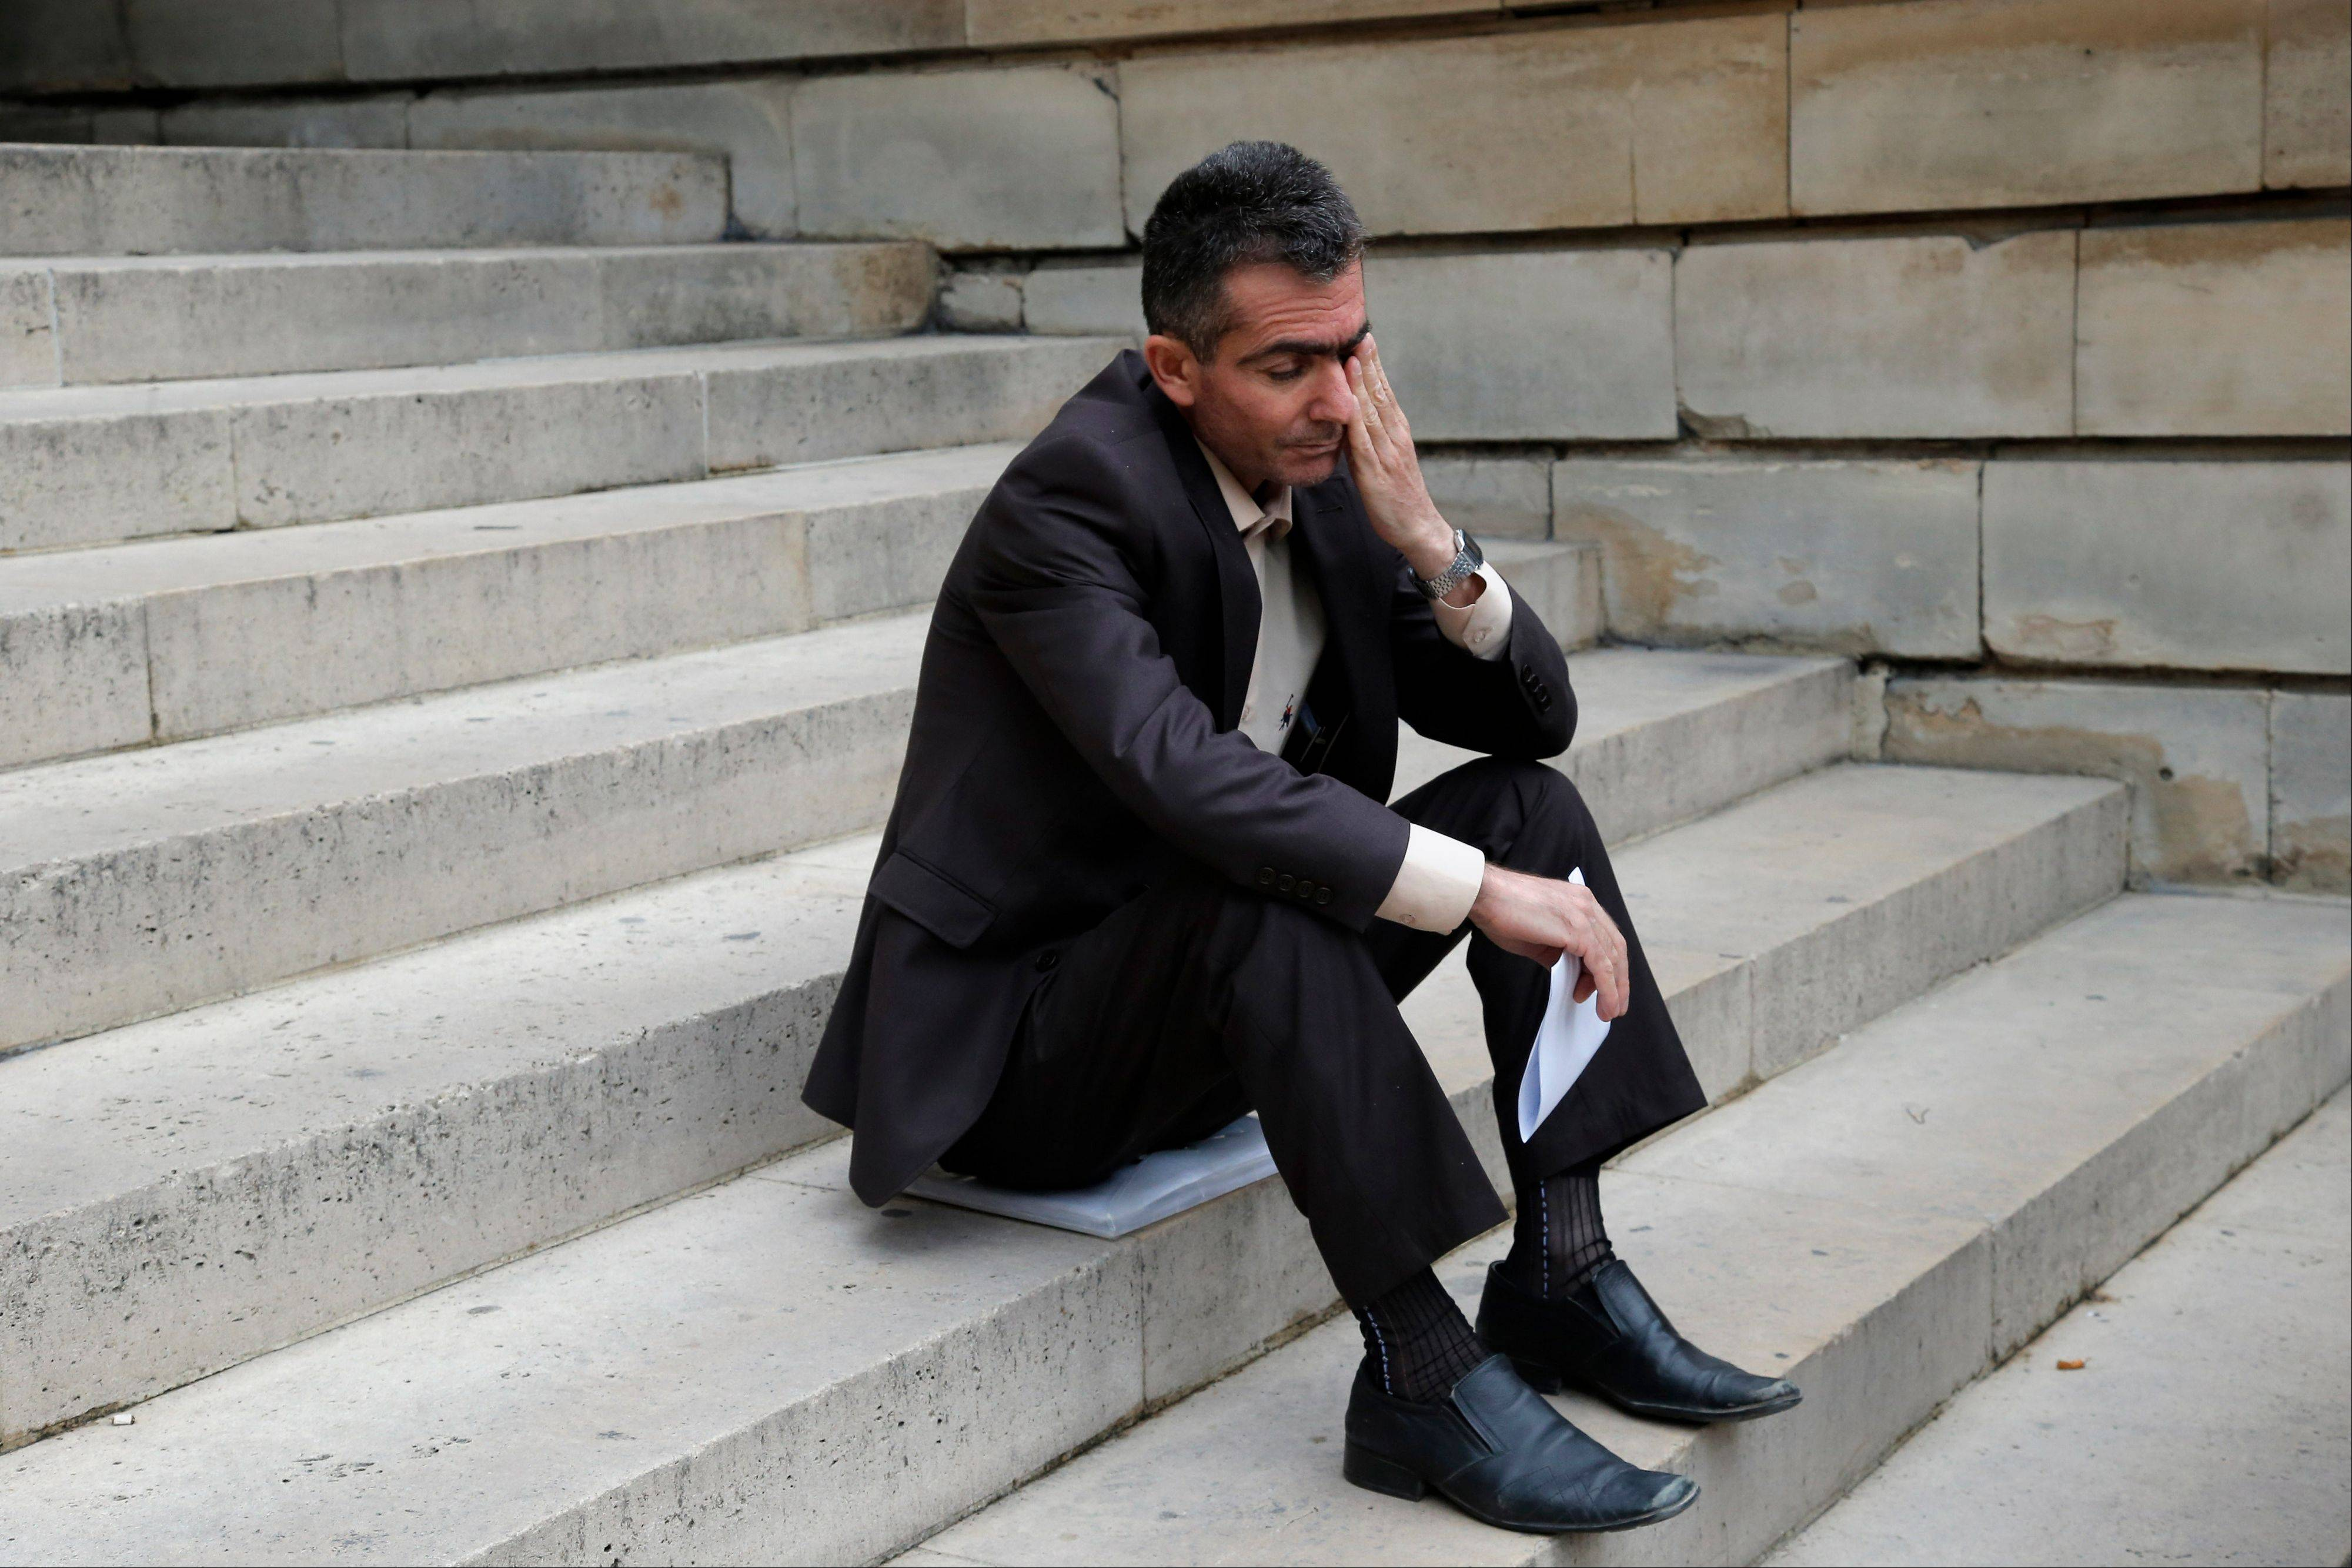 Kamil Abdulqadir Wais Mohammed sits on the steps of Paris court as he arrives at court to file a legal complaint Monday. Twenty victims of Saddam Hussein's 1988 chemical weapons attack on the Kurdish town of Halabja are demanding a French judicial investigation into companies that supplied the materials. Halabja marked the deadliest chemical weapons attack against civilians.